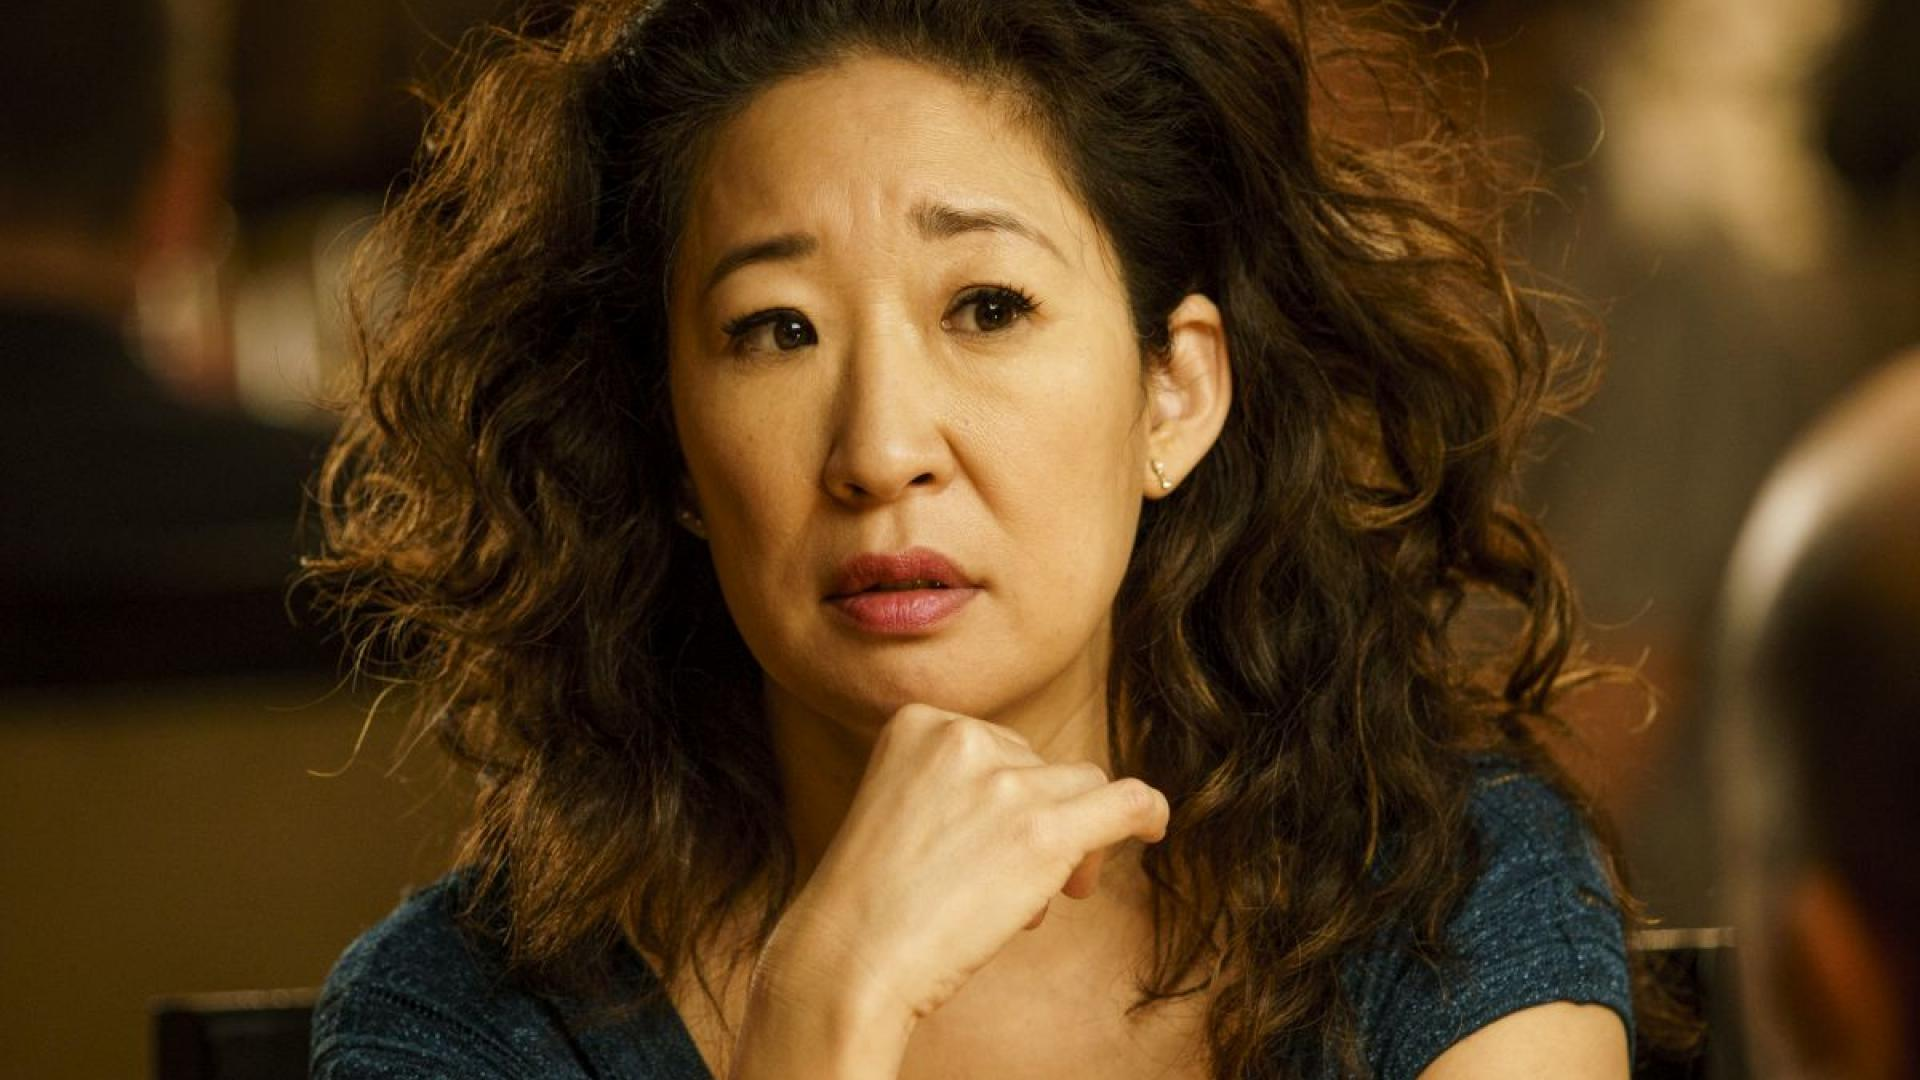 BBC America's 'Killing Eve' Is Murderously Fun | Telly Visions